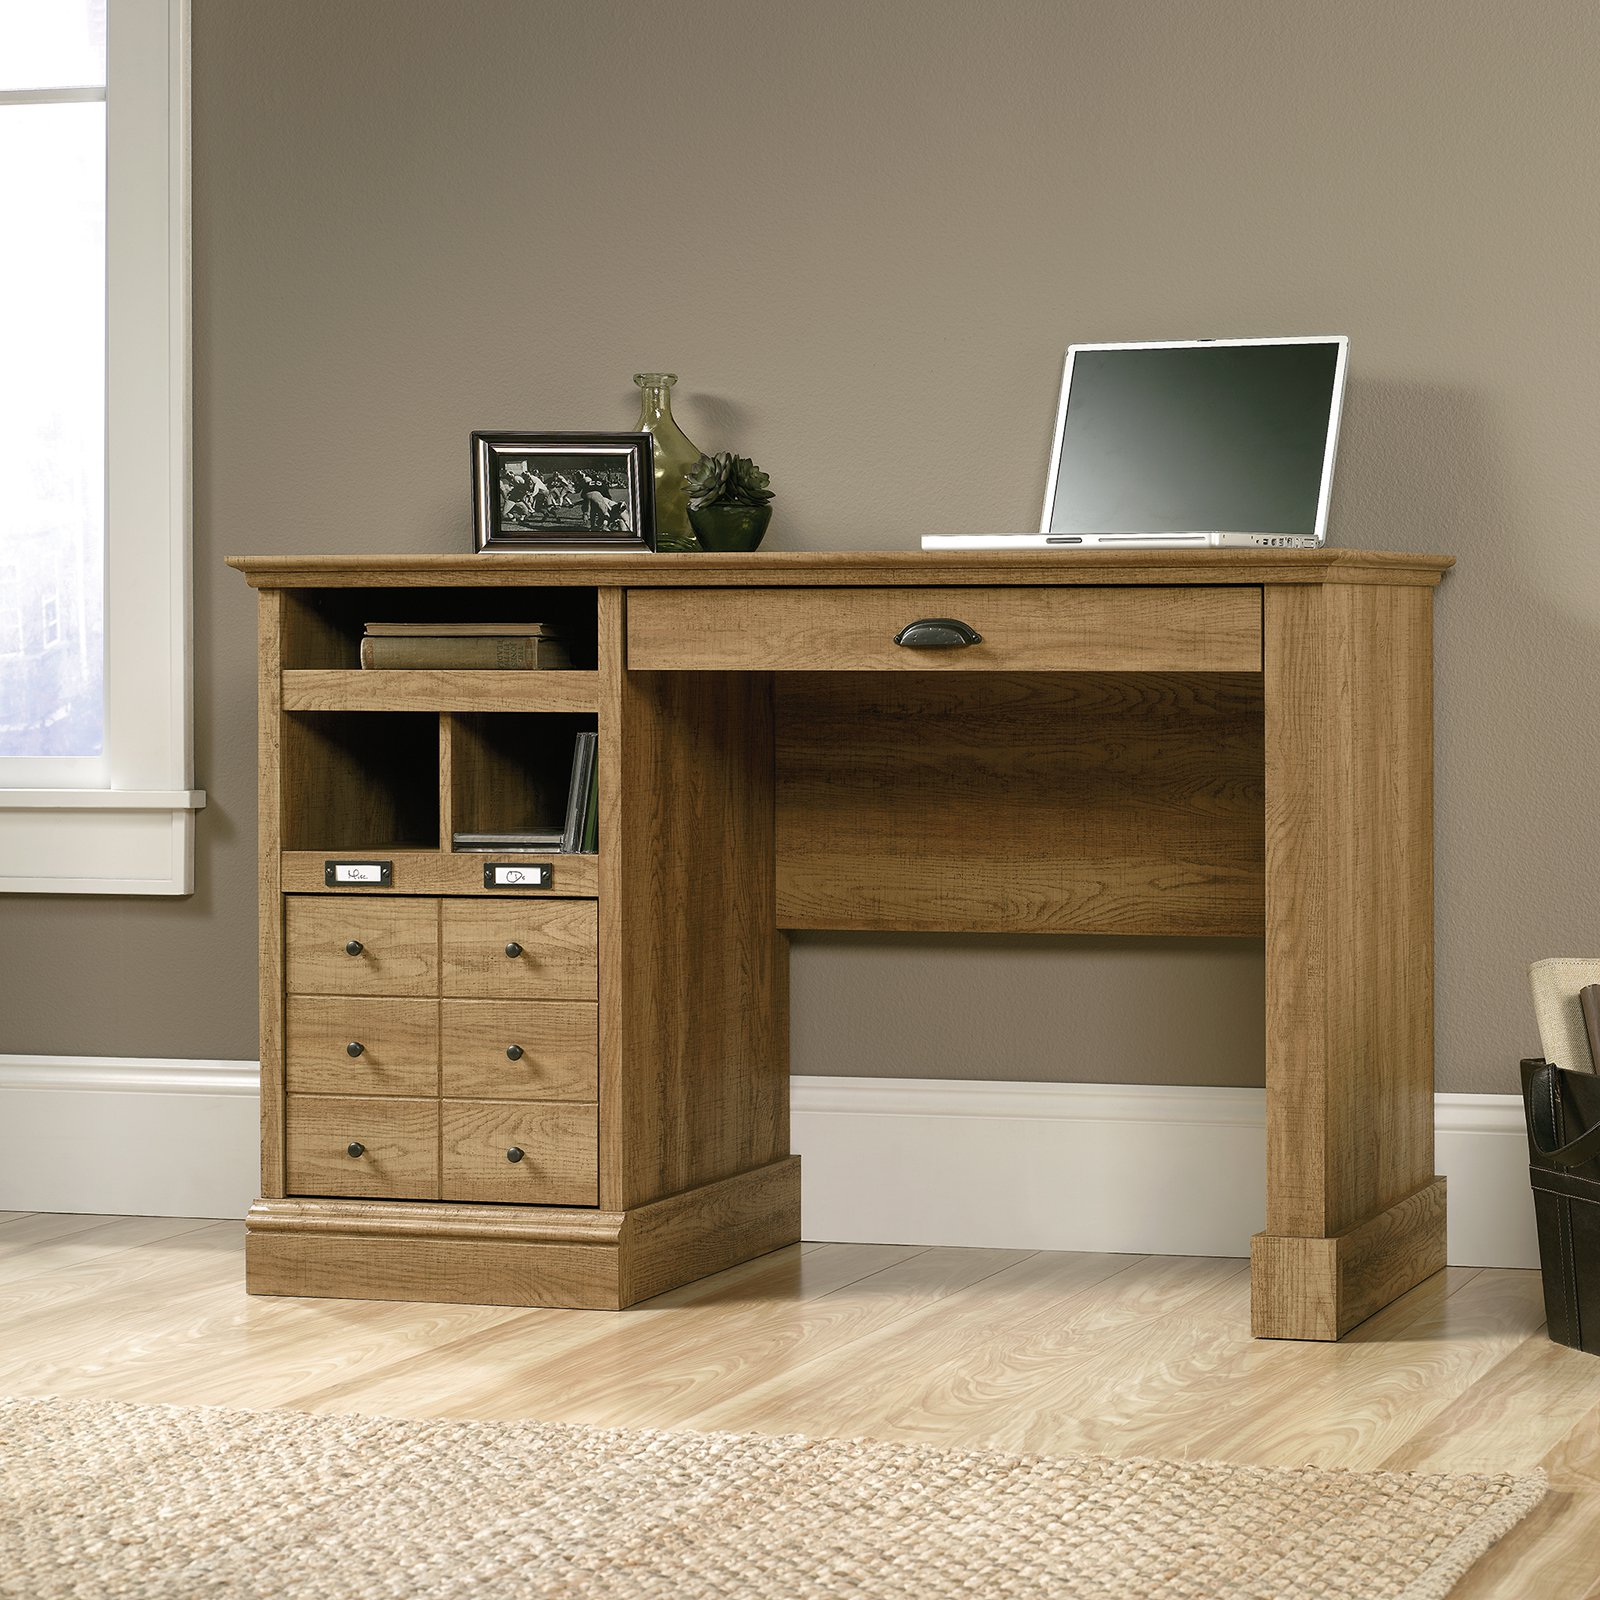 Sauder Barrister Lane 1-Drawer Desk Scribed Oak by Sauder